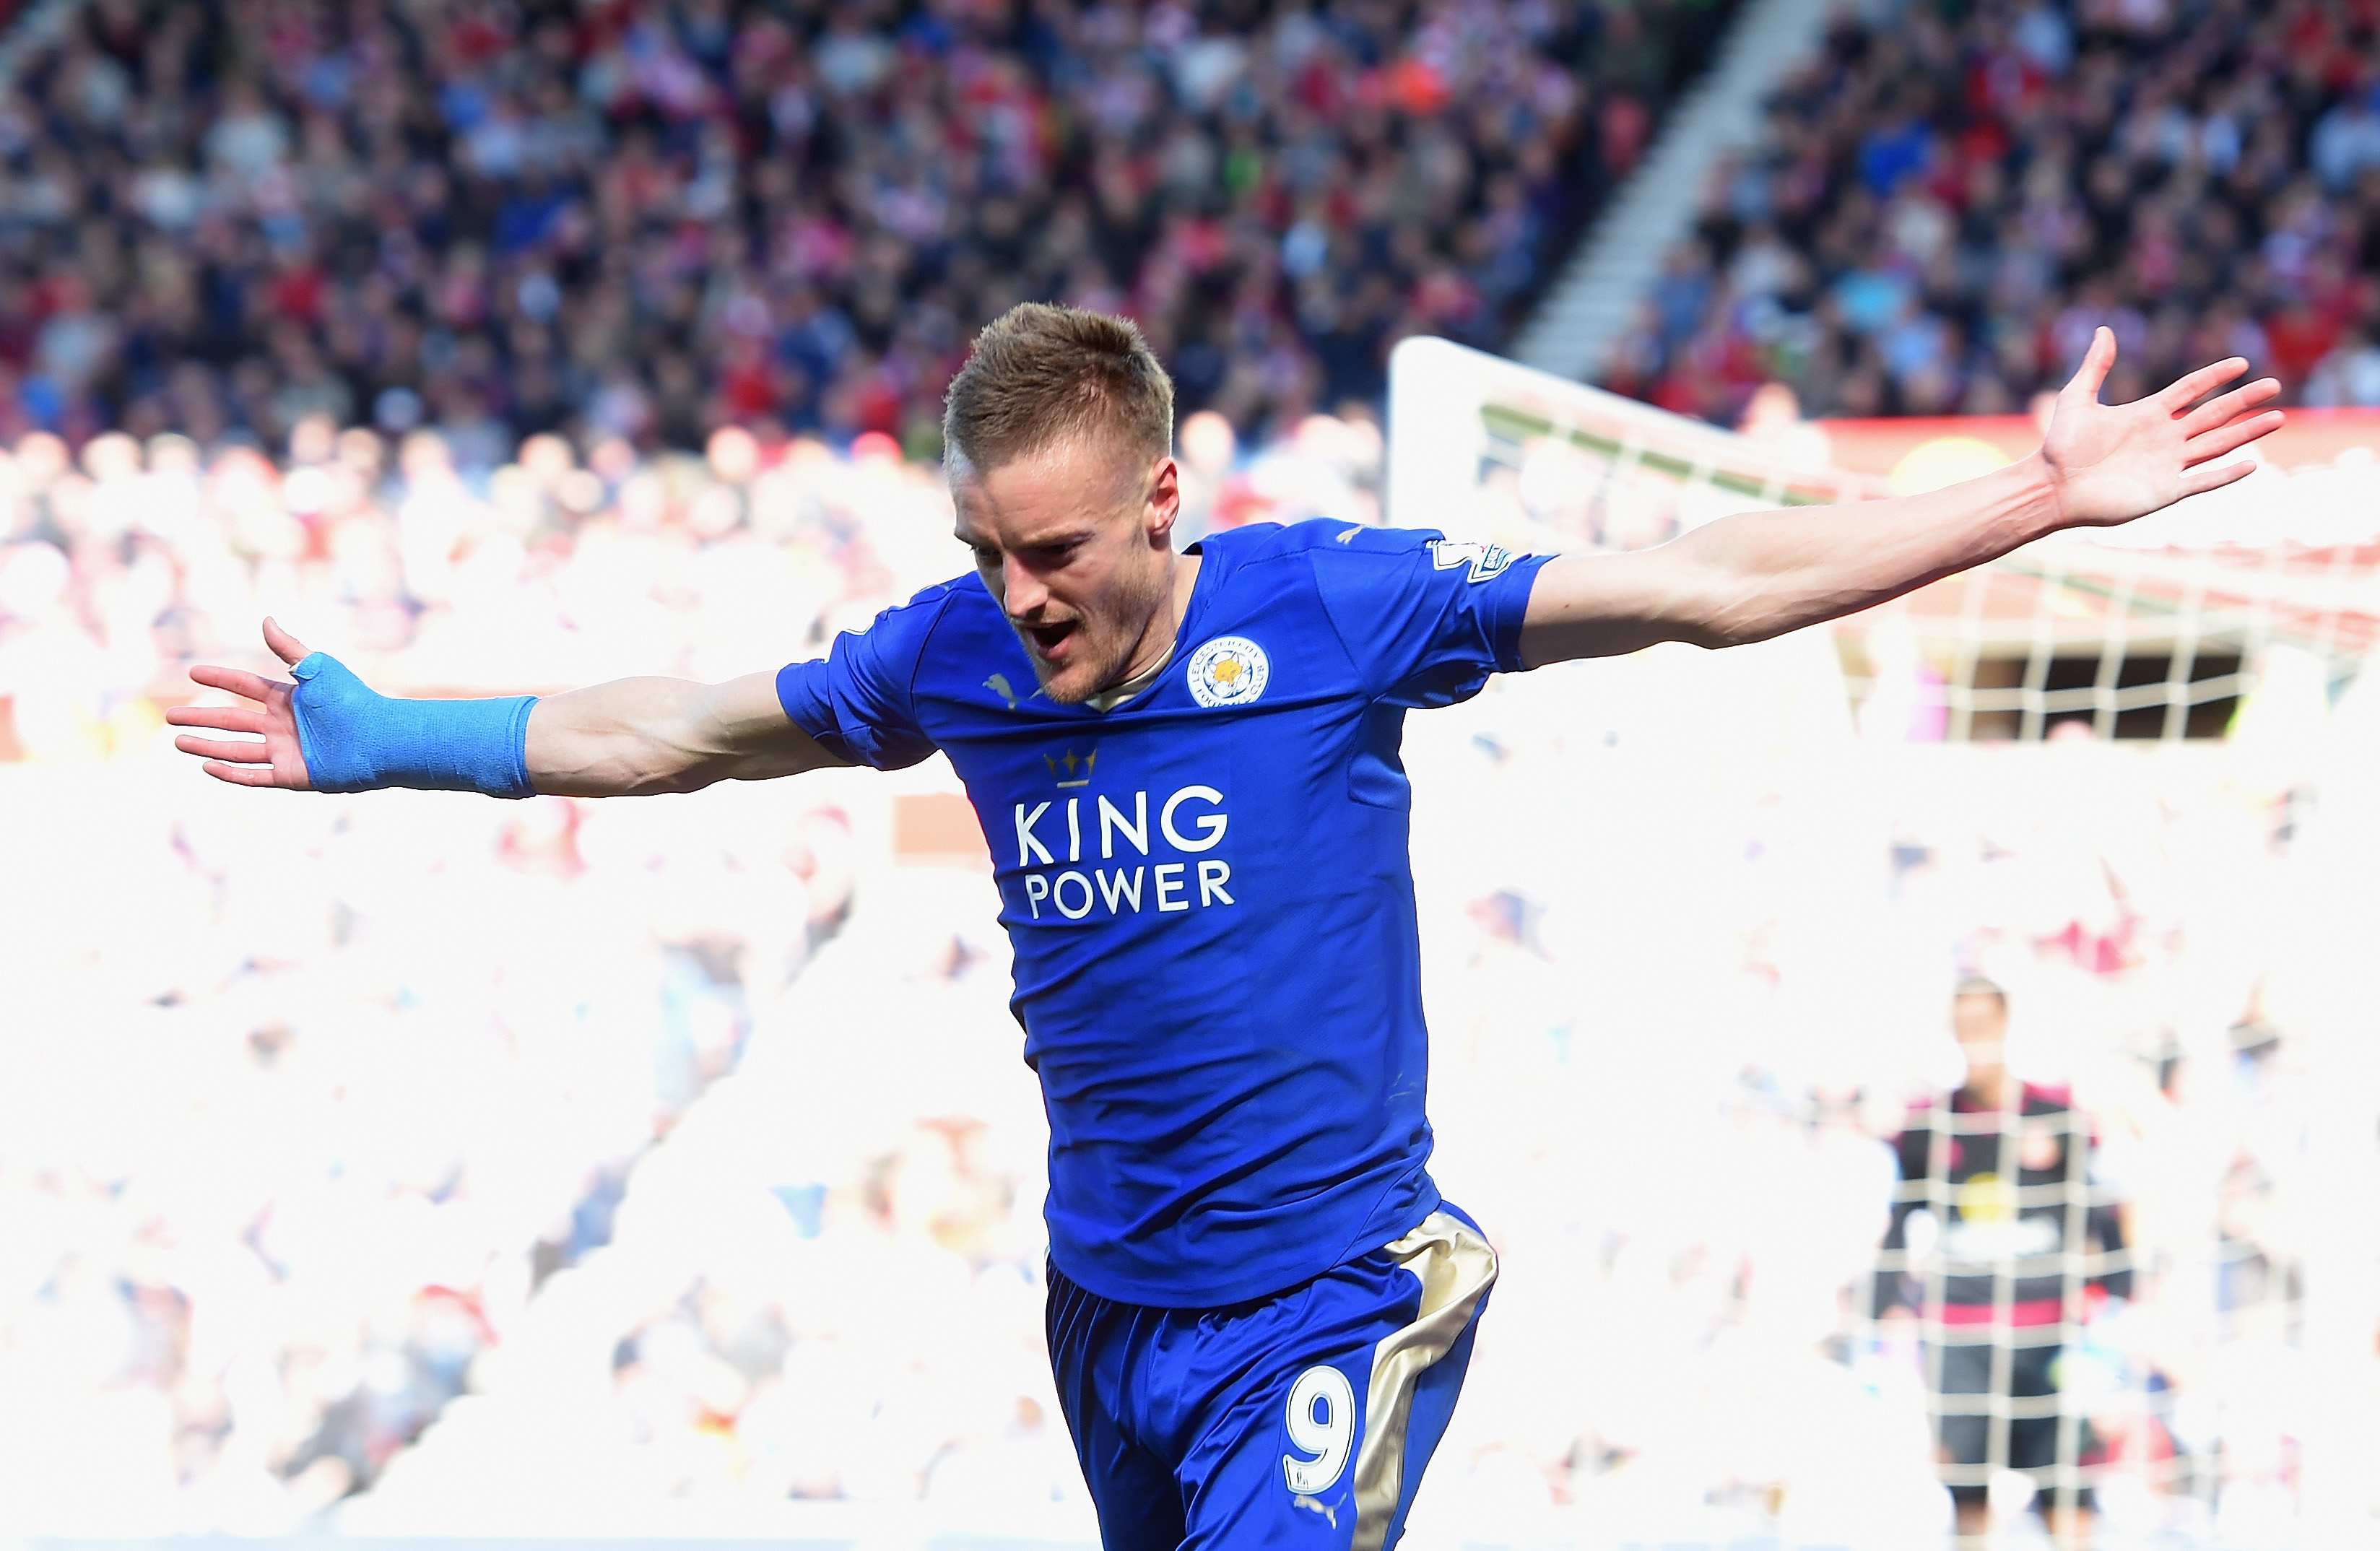 Inexperience may cost Vardy Euro 2016 starting spot - Wenger